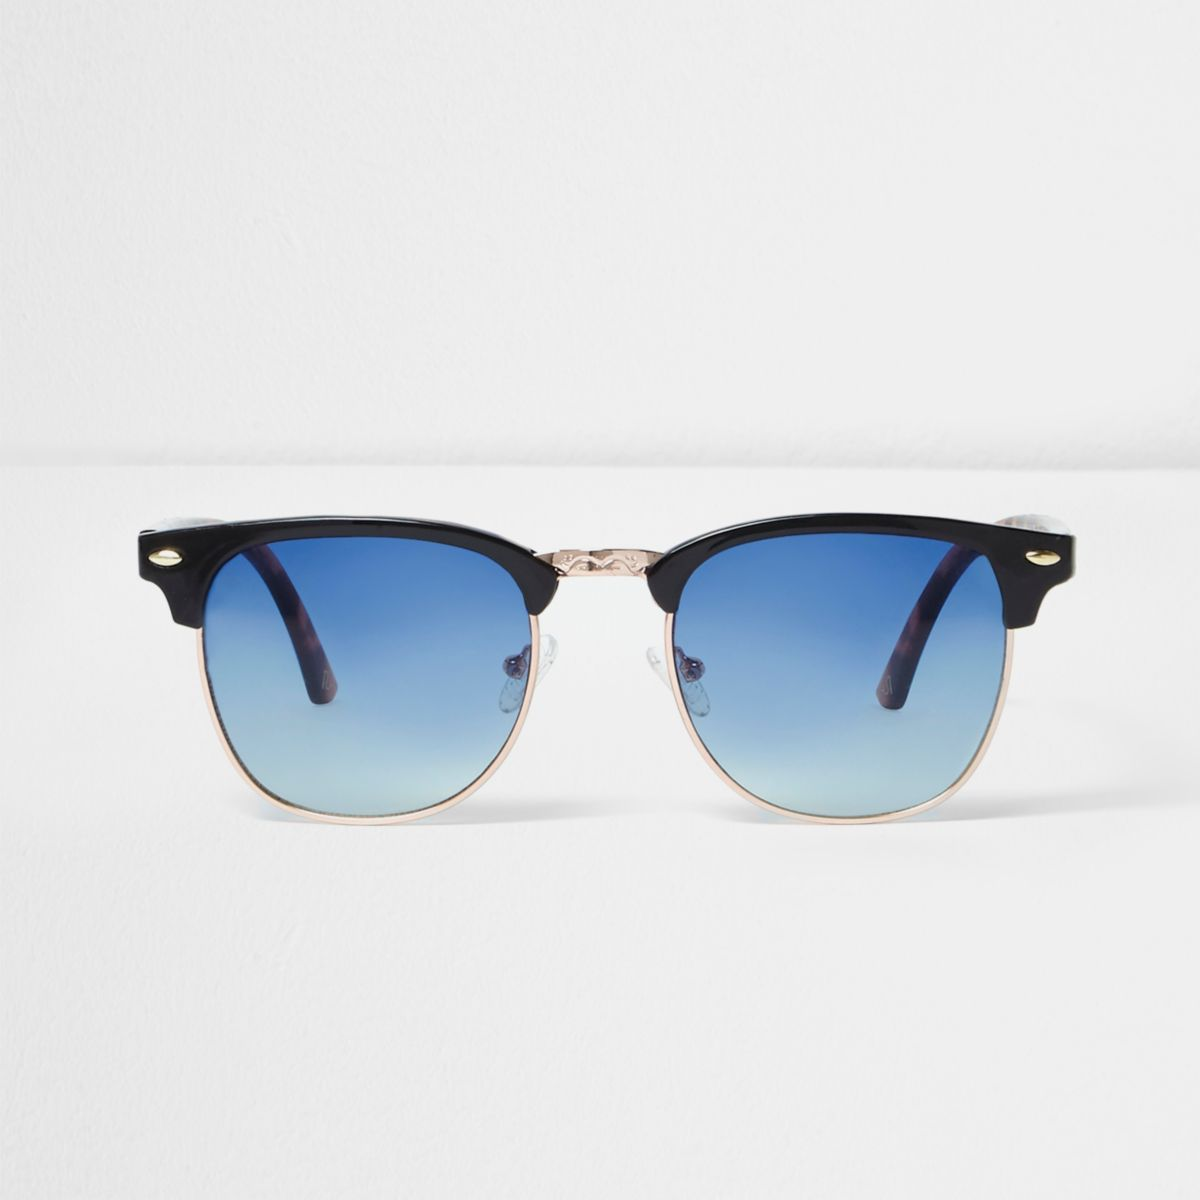 Black retro blue lens sunglasses